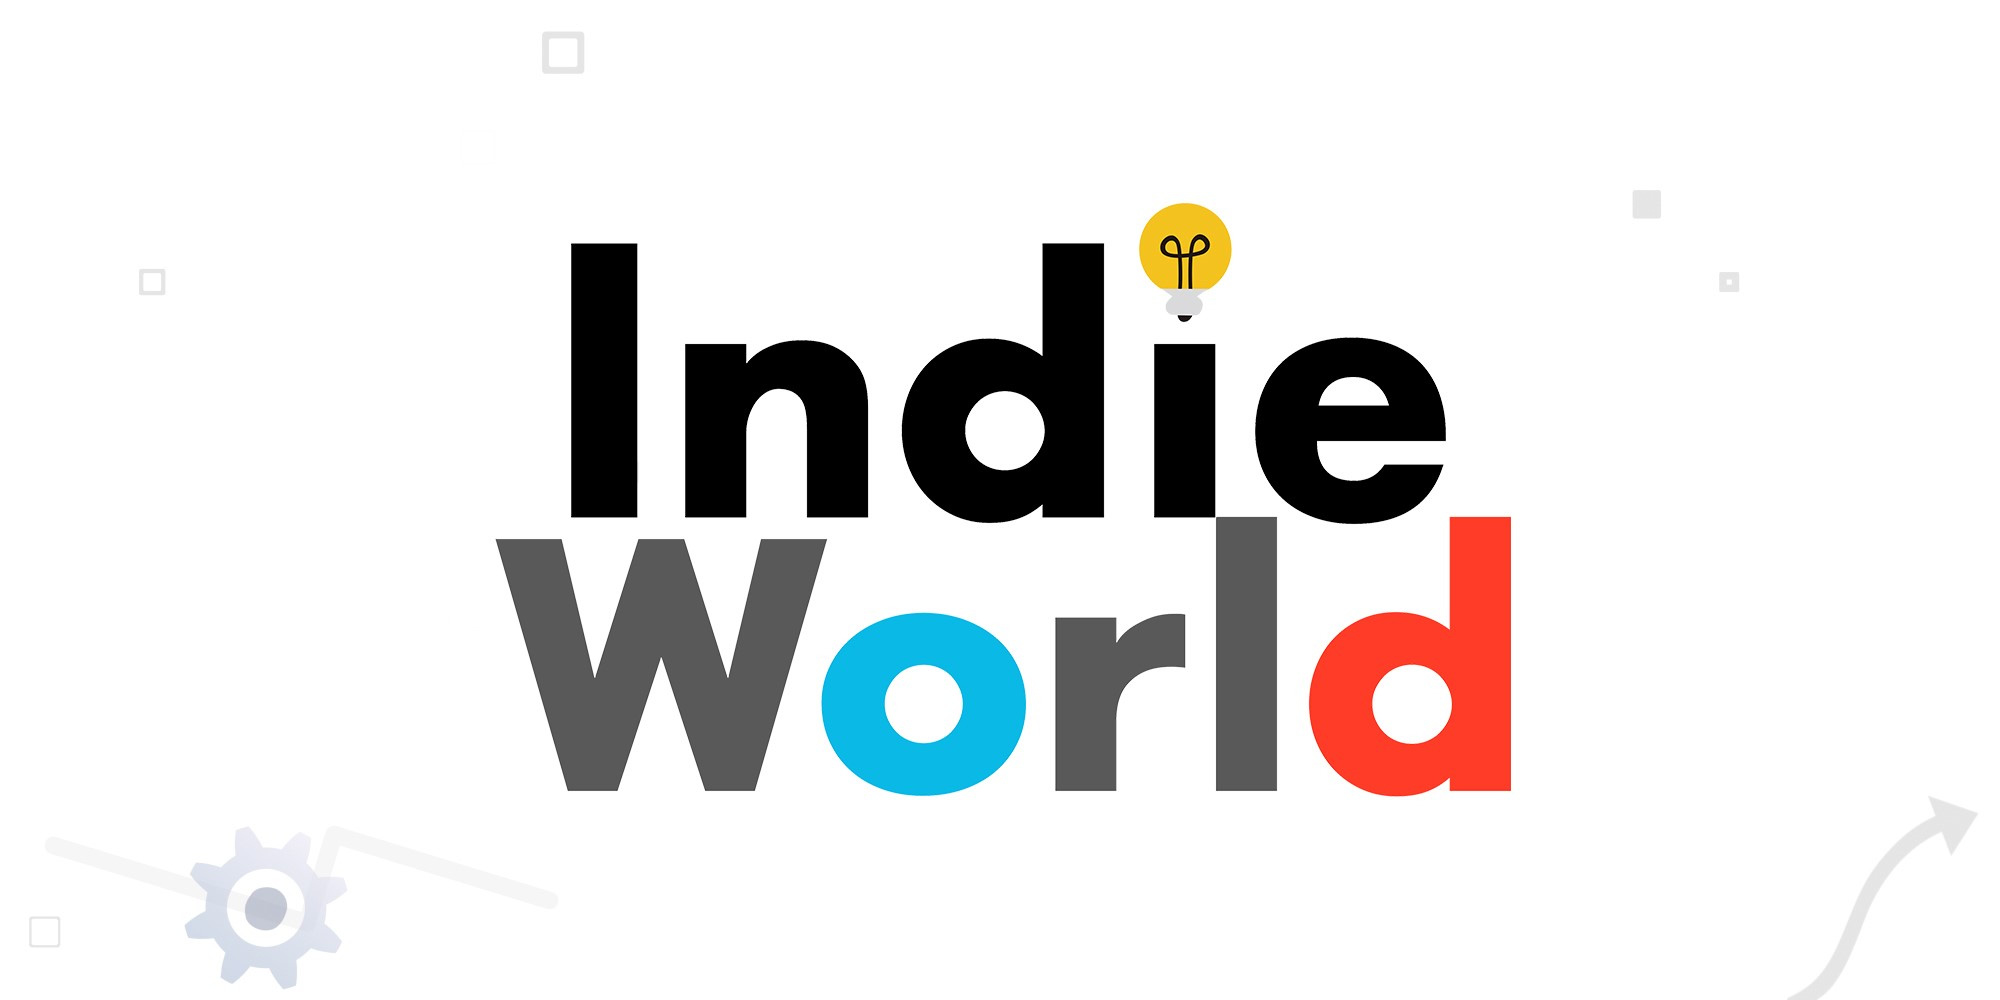 RUMOR - Nintendo's IndieWorld Direct will reveal yet another Microsoft title for Switch, two games will be surprise-launched